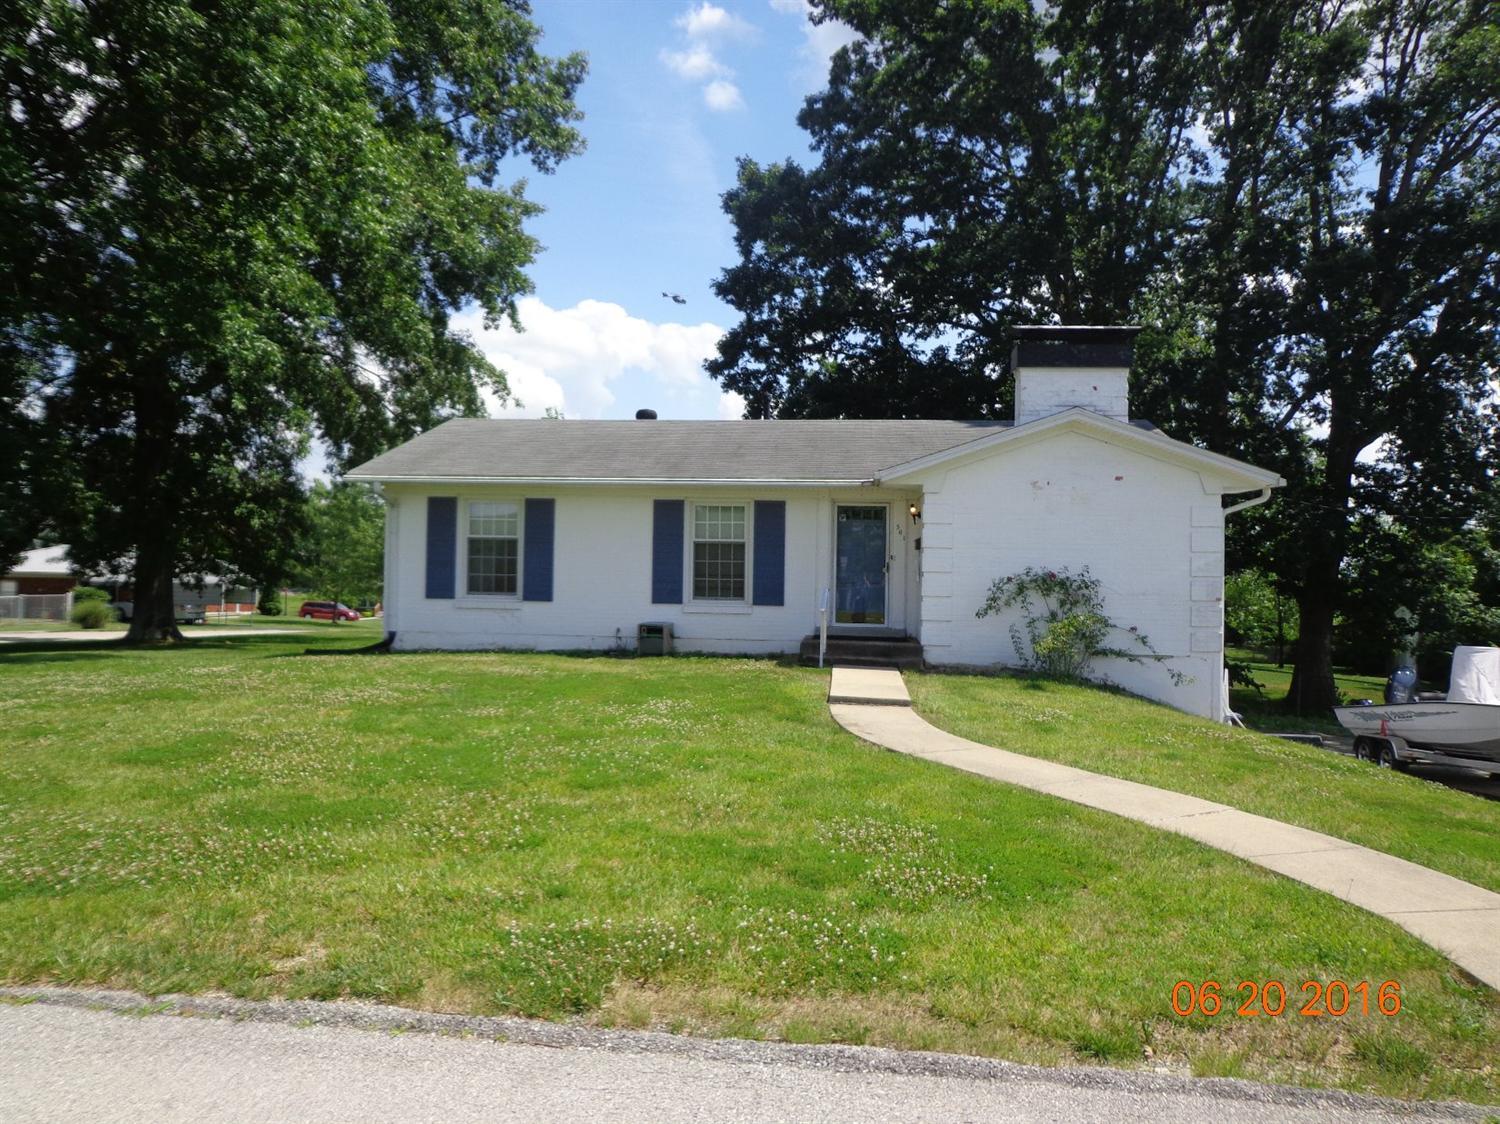 Home For Sale at 109 Kimberly Dr, Frankfort, KY 40601